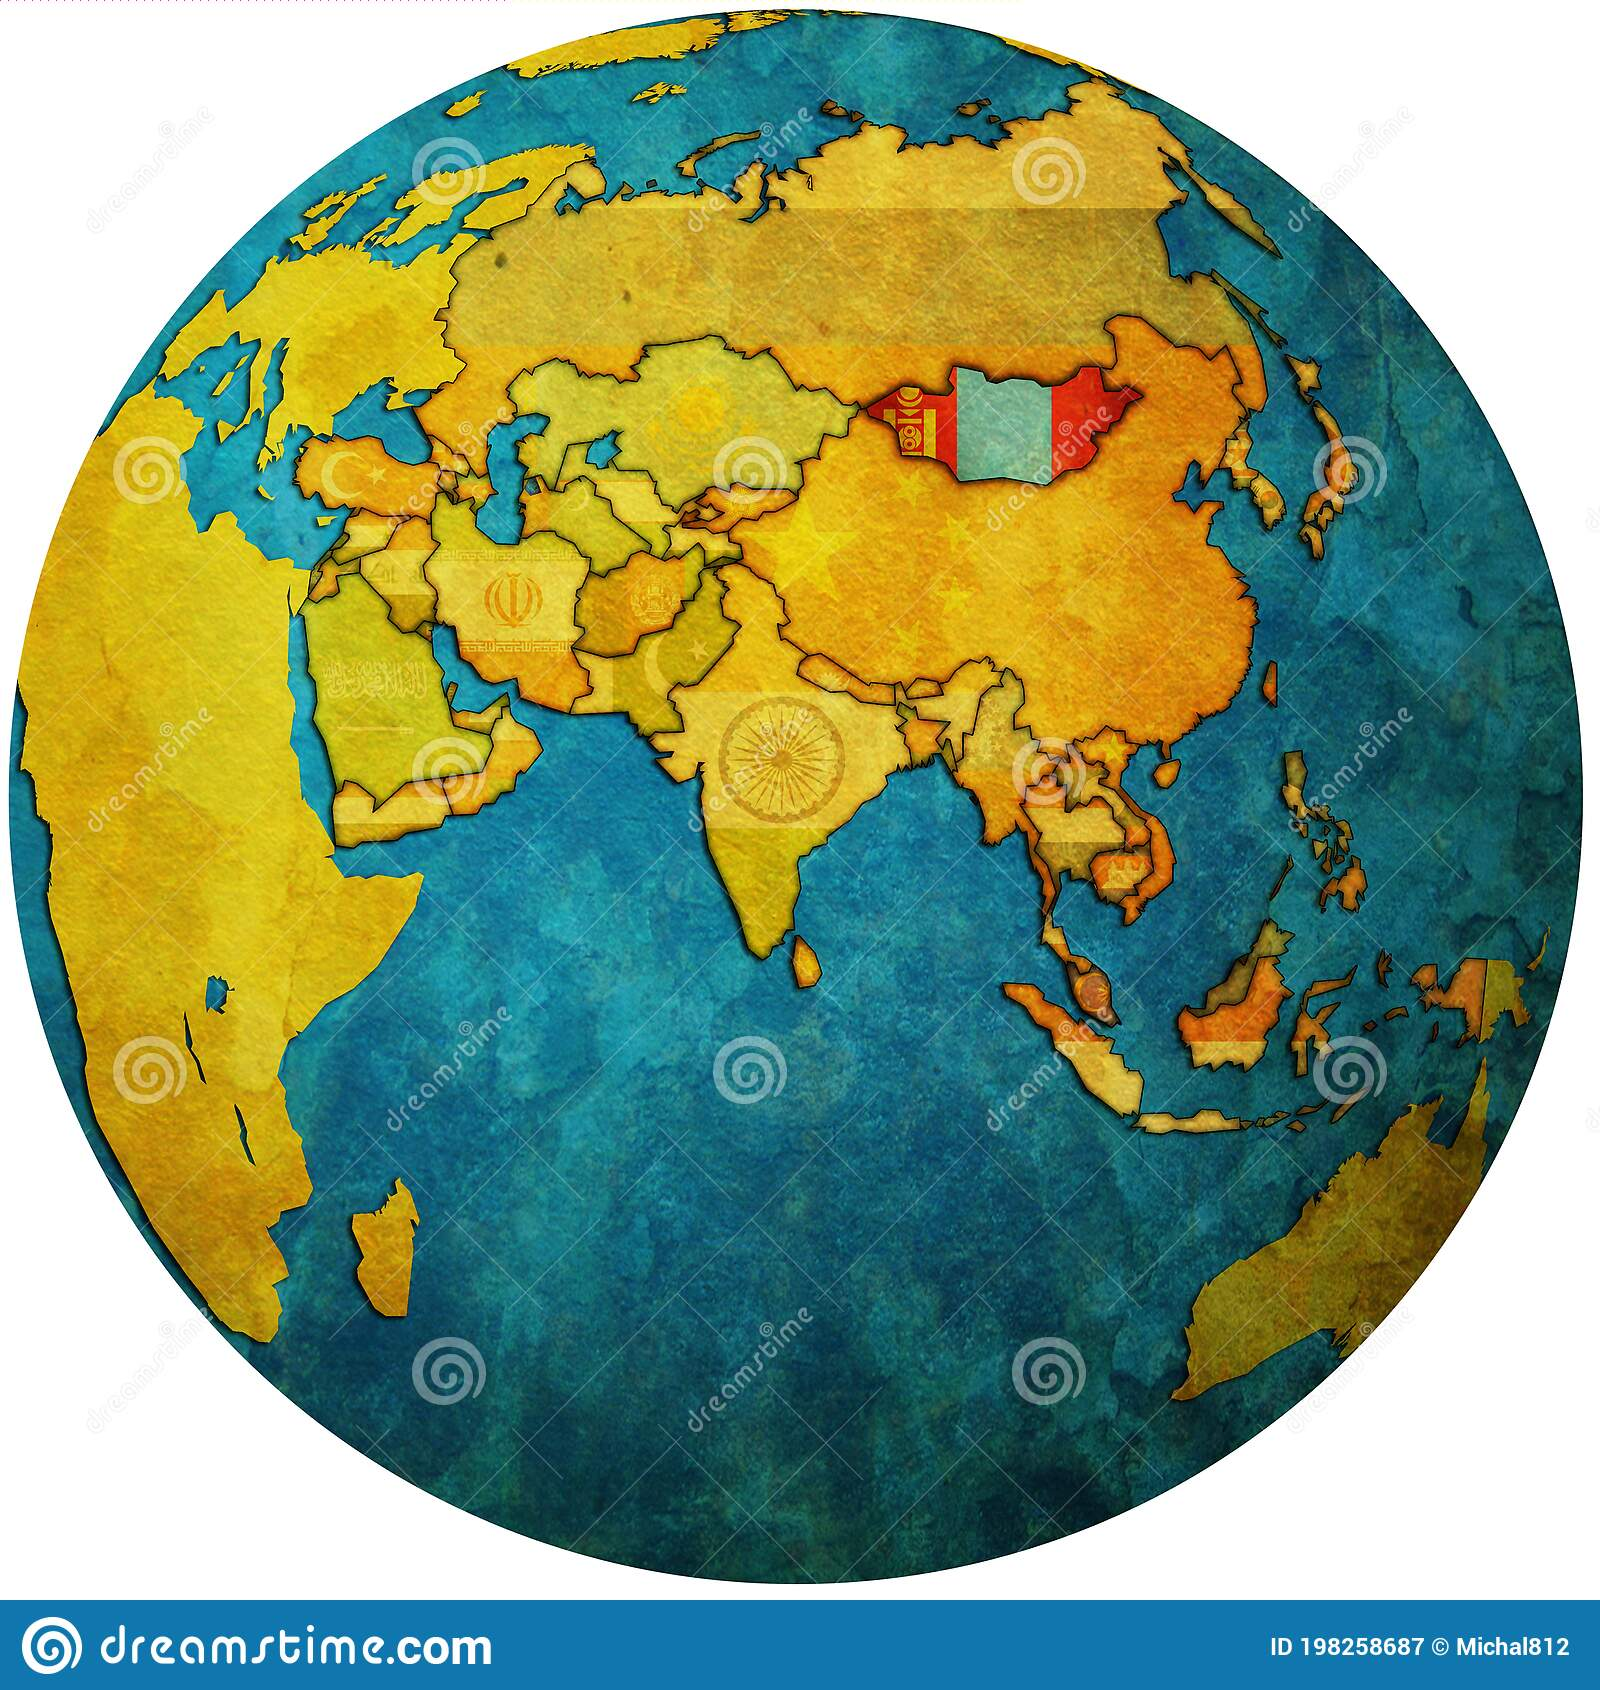 Picture of: 251 Mongolia Map Photos Free Royalty Free Stock Photos From Dreamstime